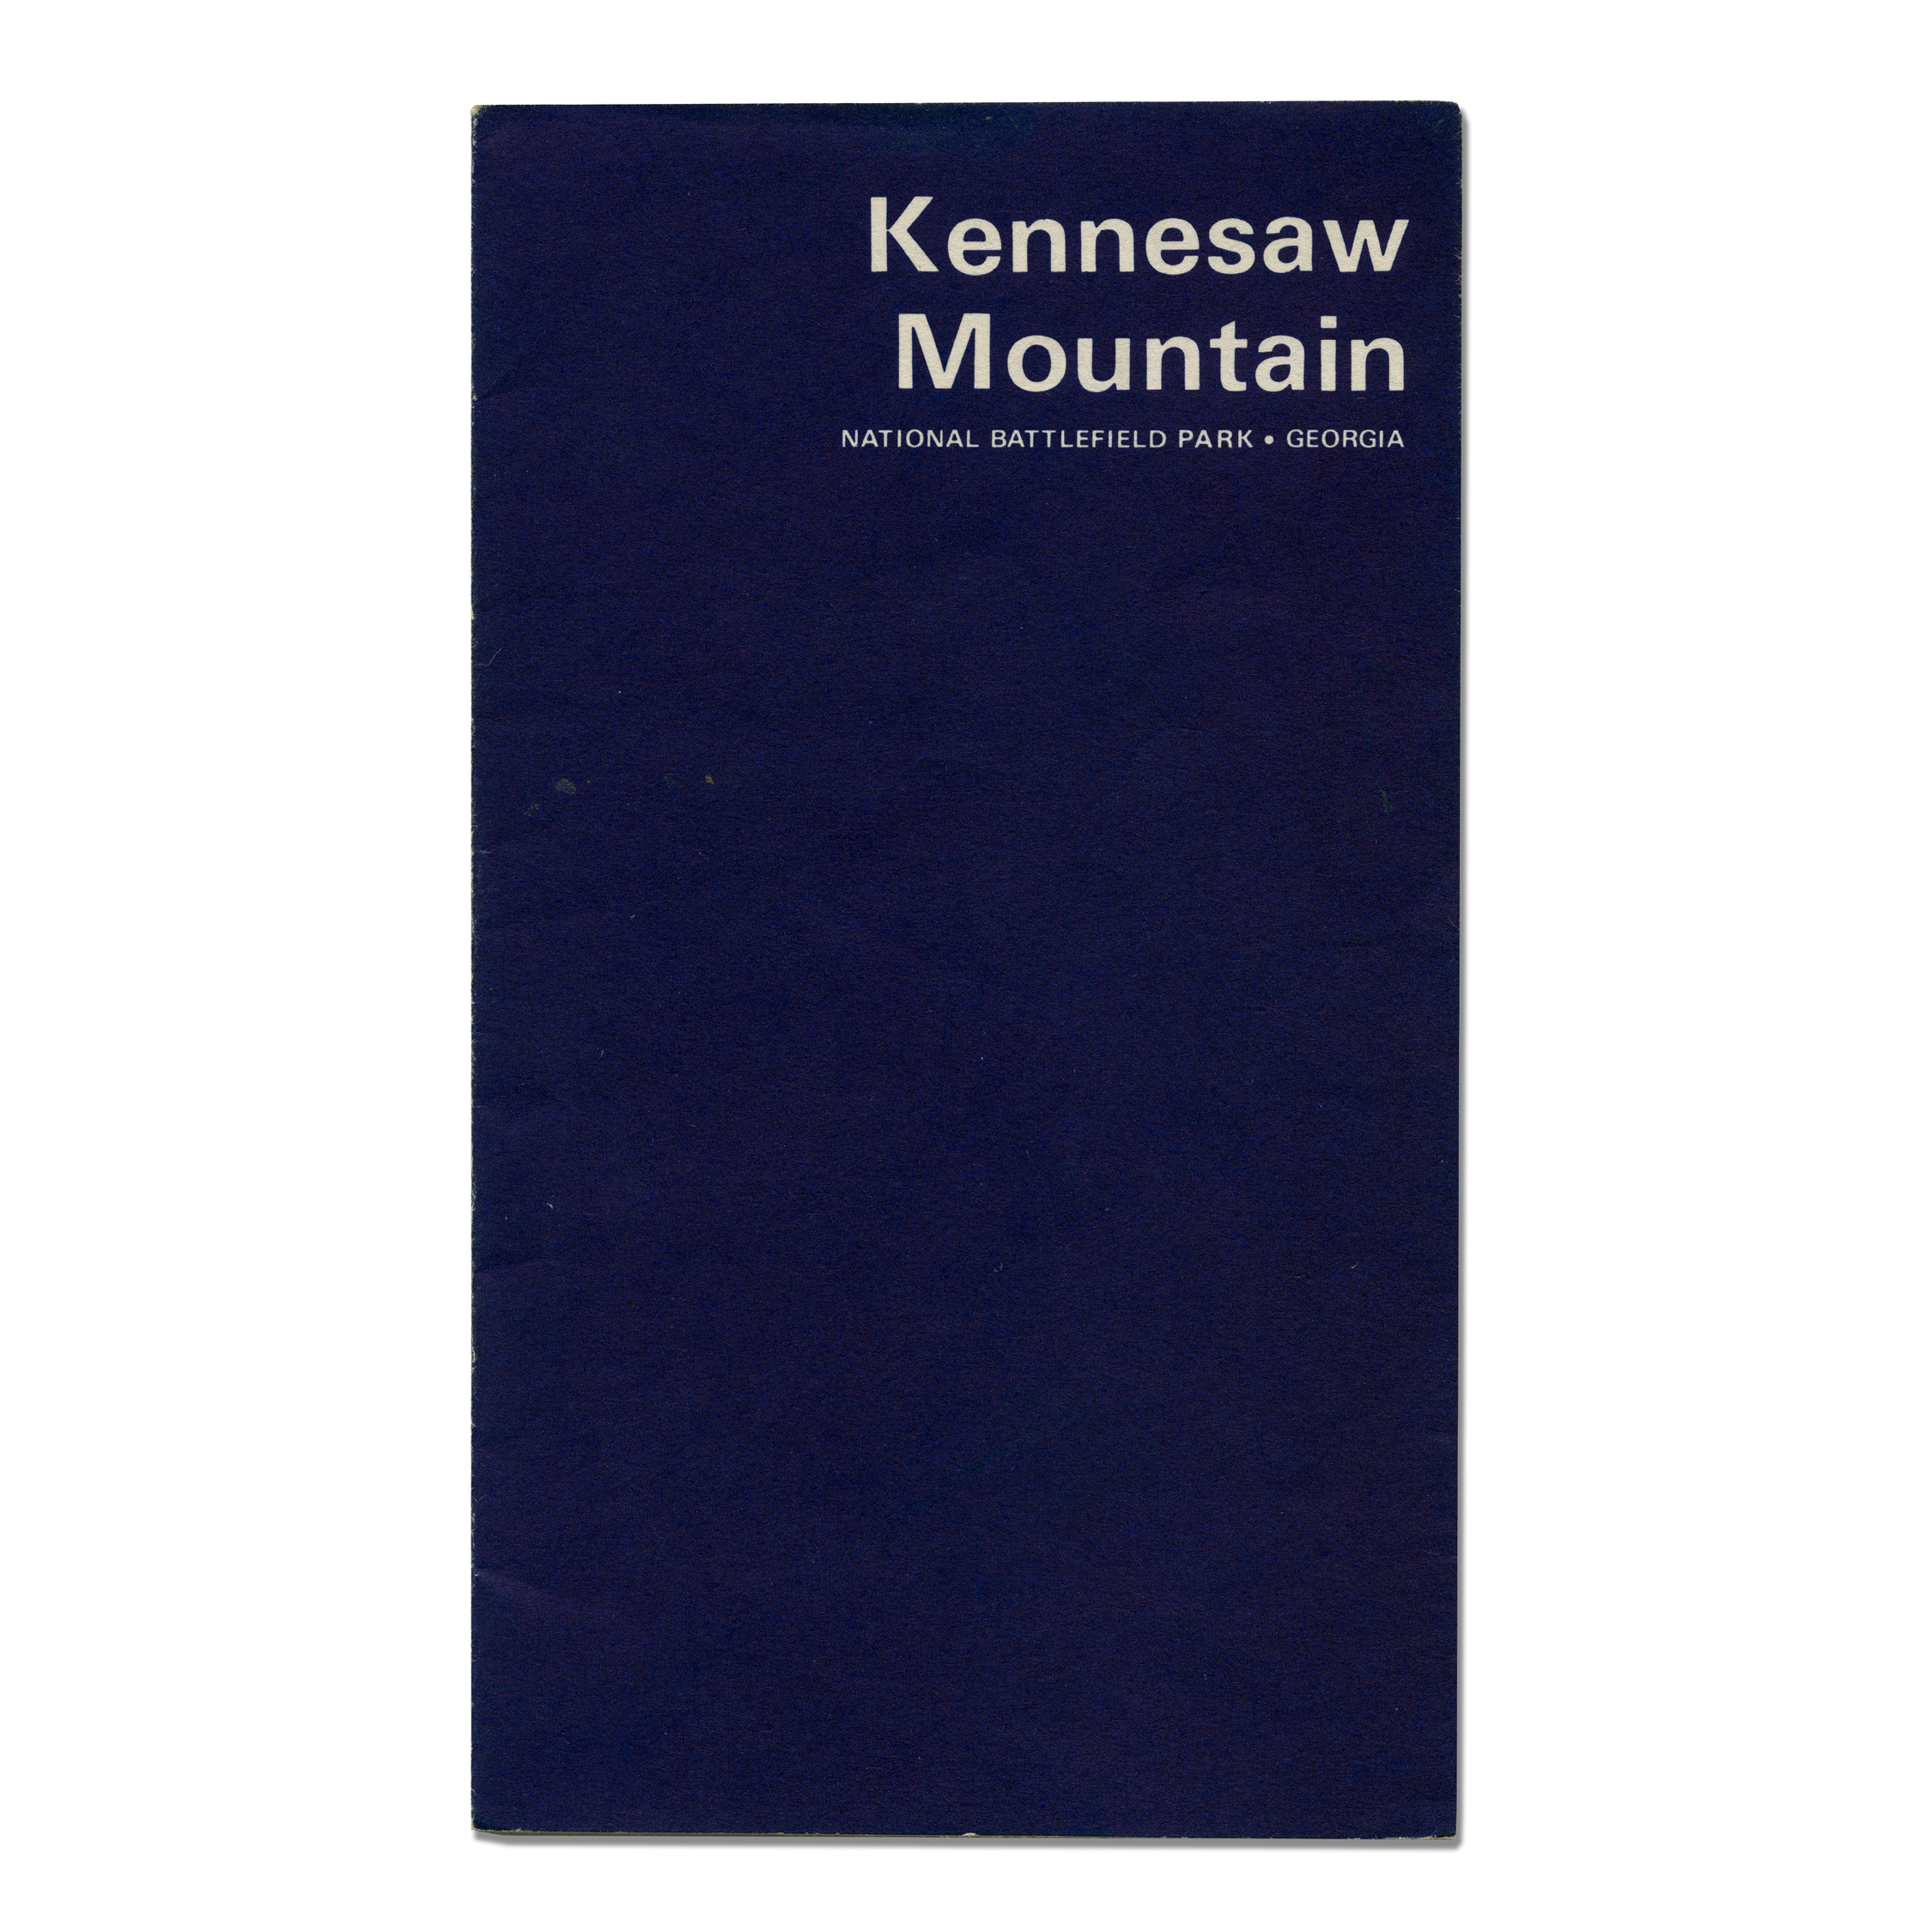 1974_kennesaw_mountain_national_battlefield_park_brochure.jpg